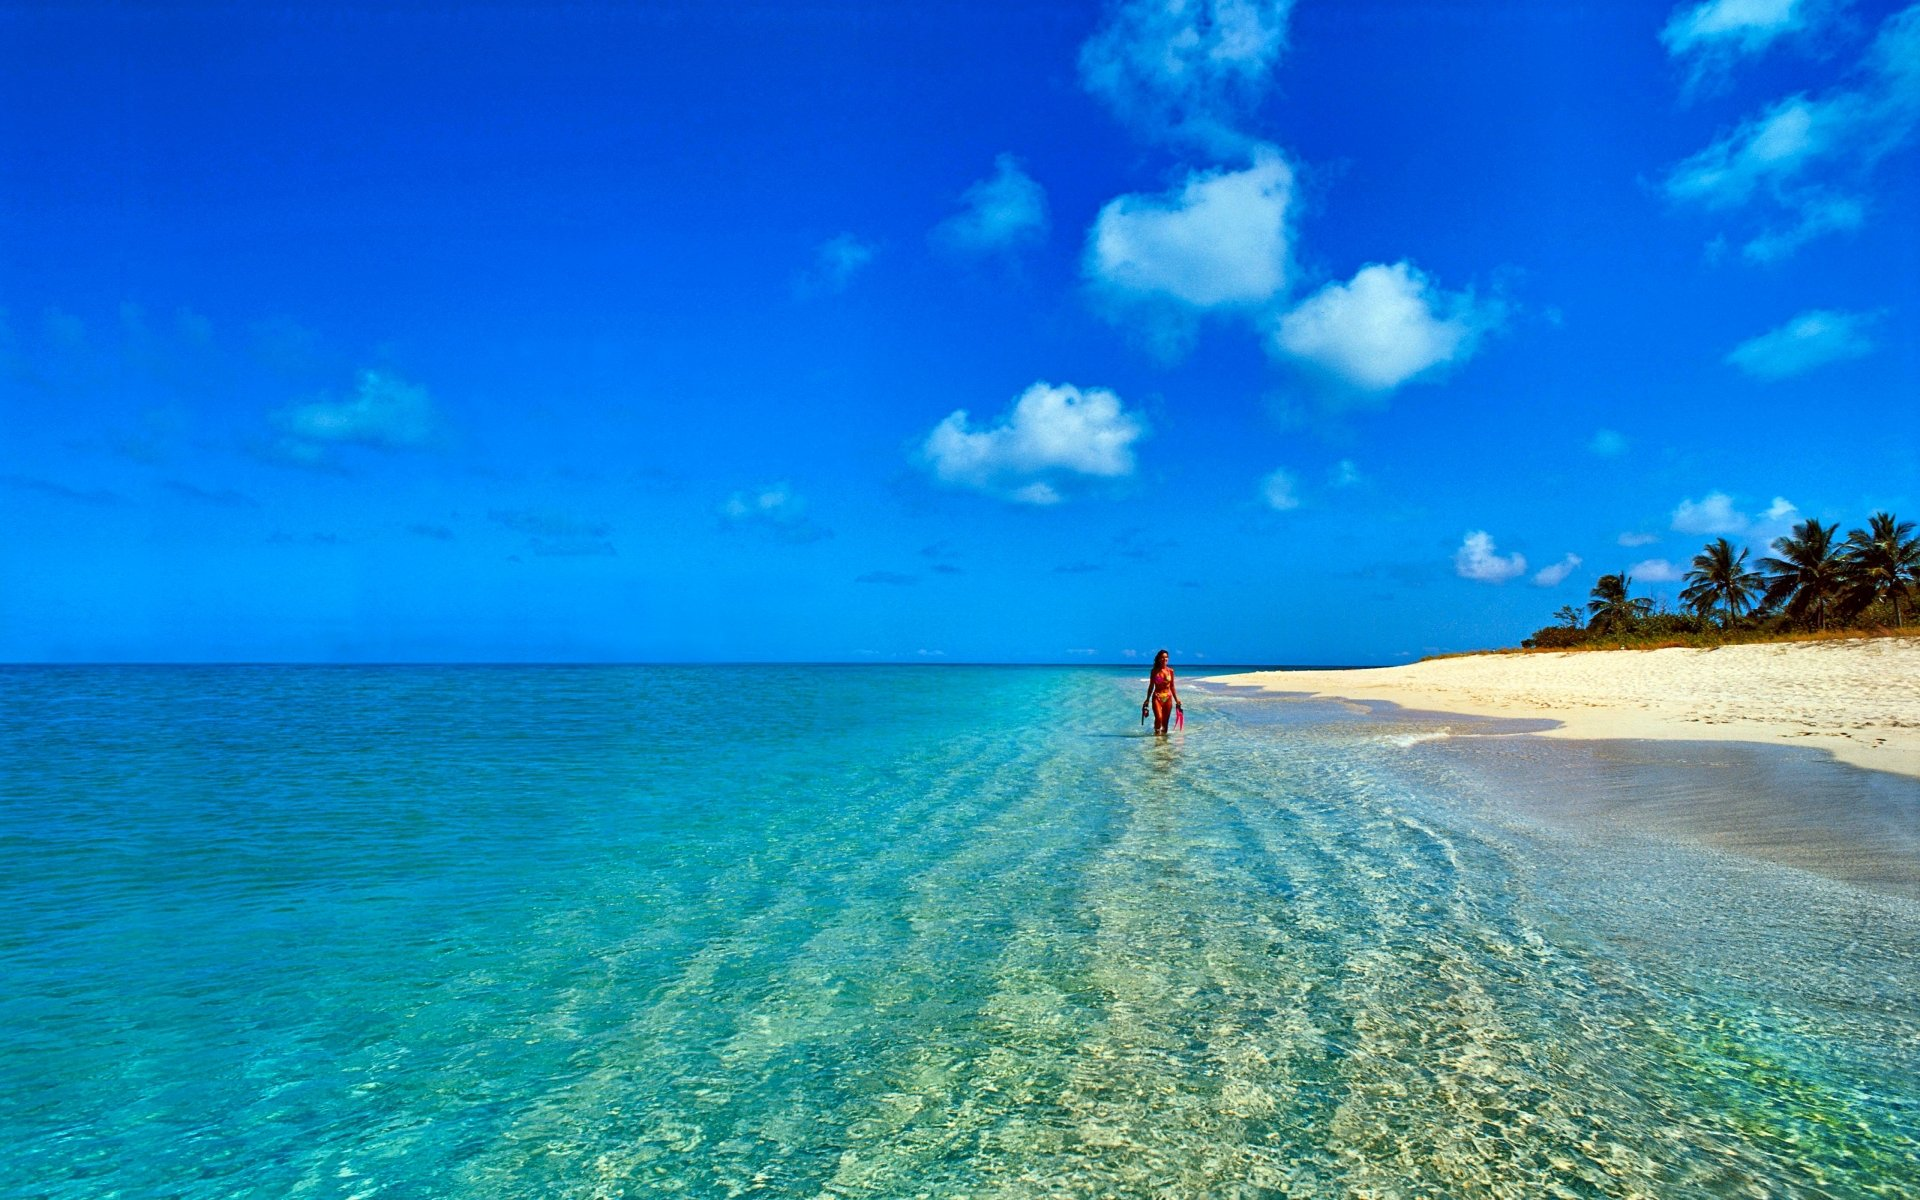 Photography - Tropical  Beach Horizon Blue Turquoise Sunny Cloud Summer Pastel Sea Wallpaper